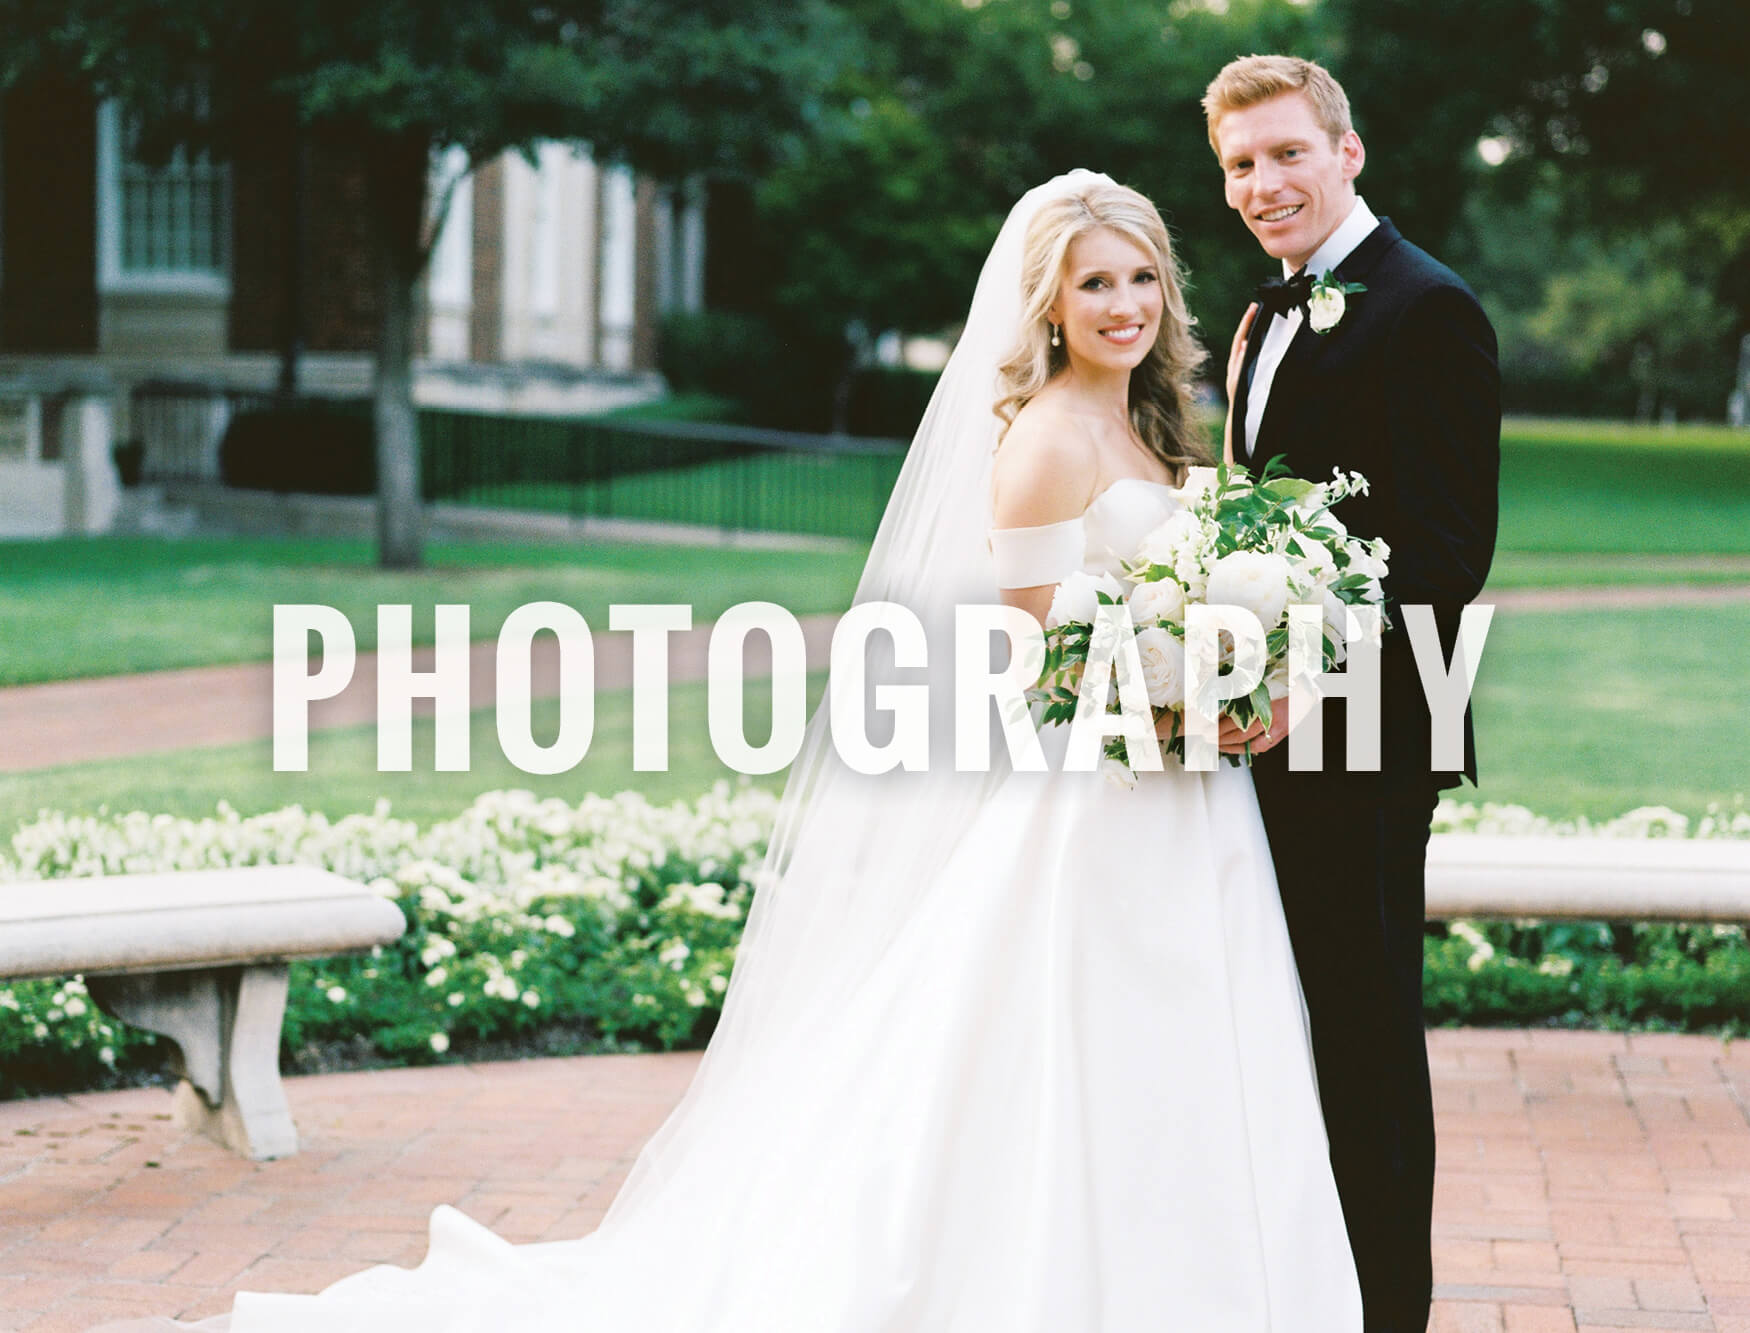 North Texas wedding photographers